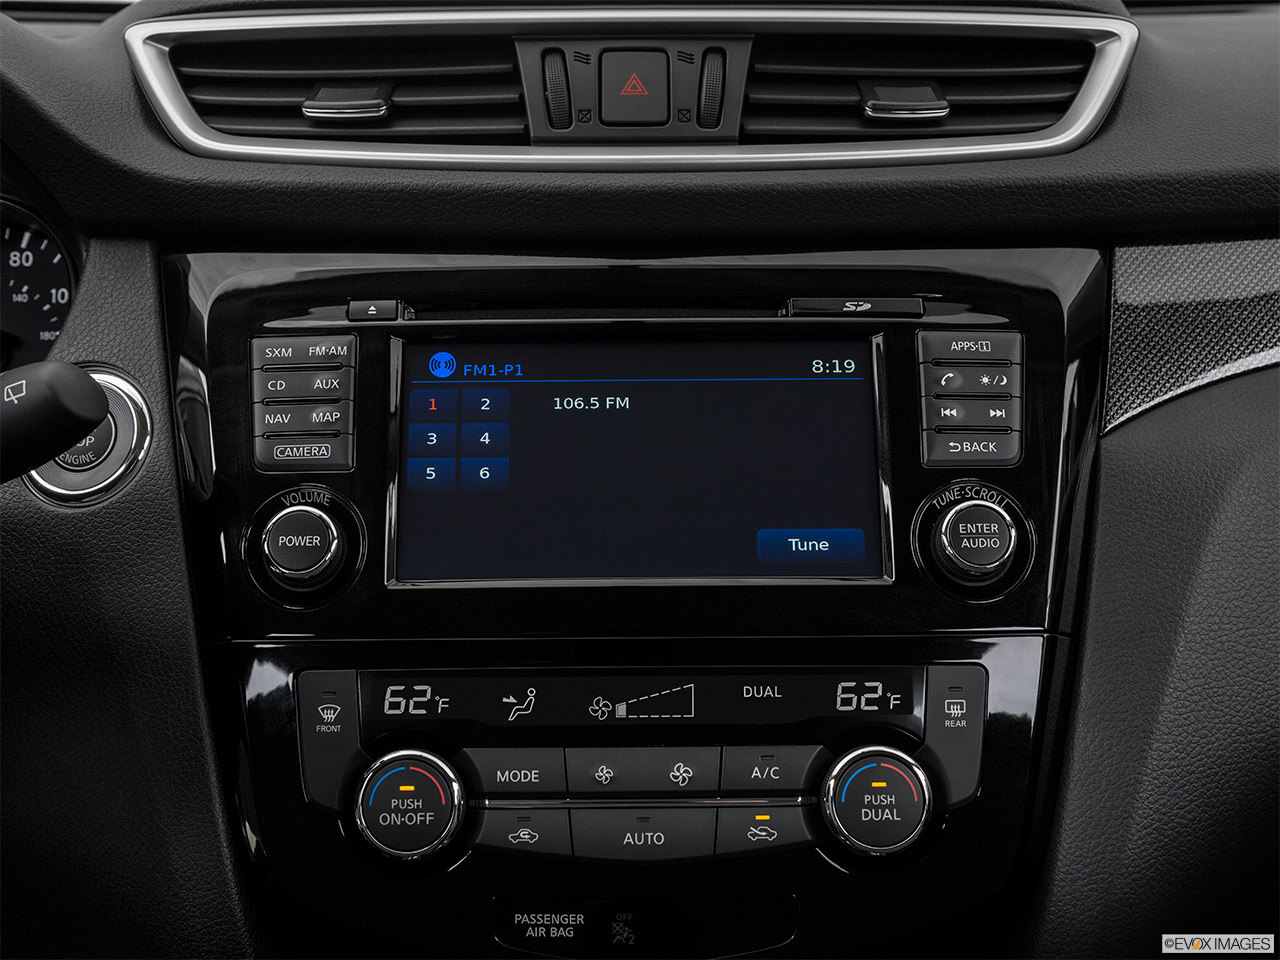 Car Pictures List for Nissan X-Trail 2016 2.5 SL 4WD ...